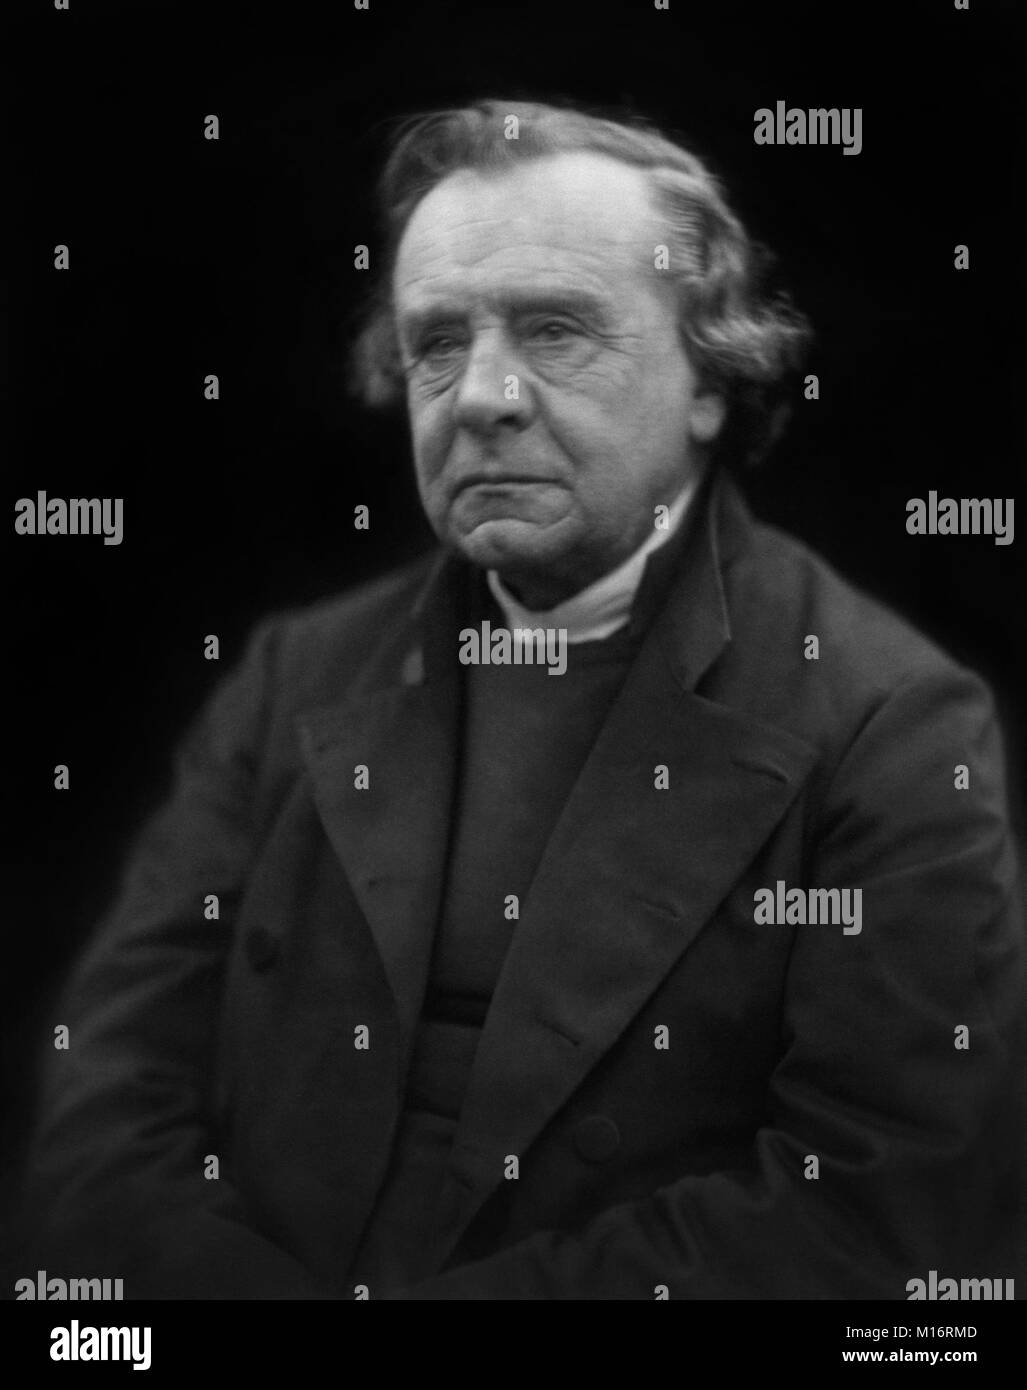 Samuel Wilberforce FRS (1805-1873), Bishop of Oxford and third son of William Wilberforce, was an opponent of Darwin's - Stock Image